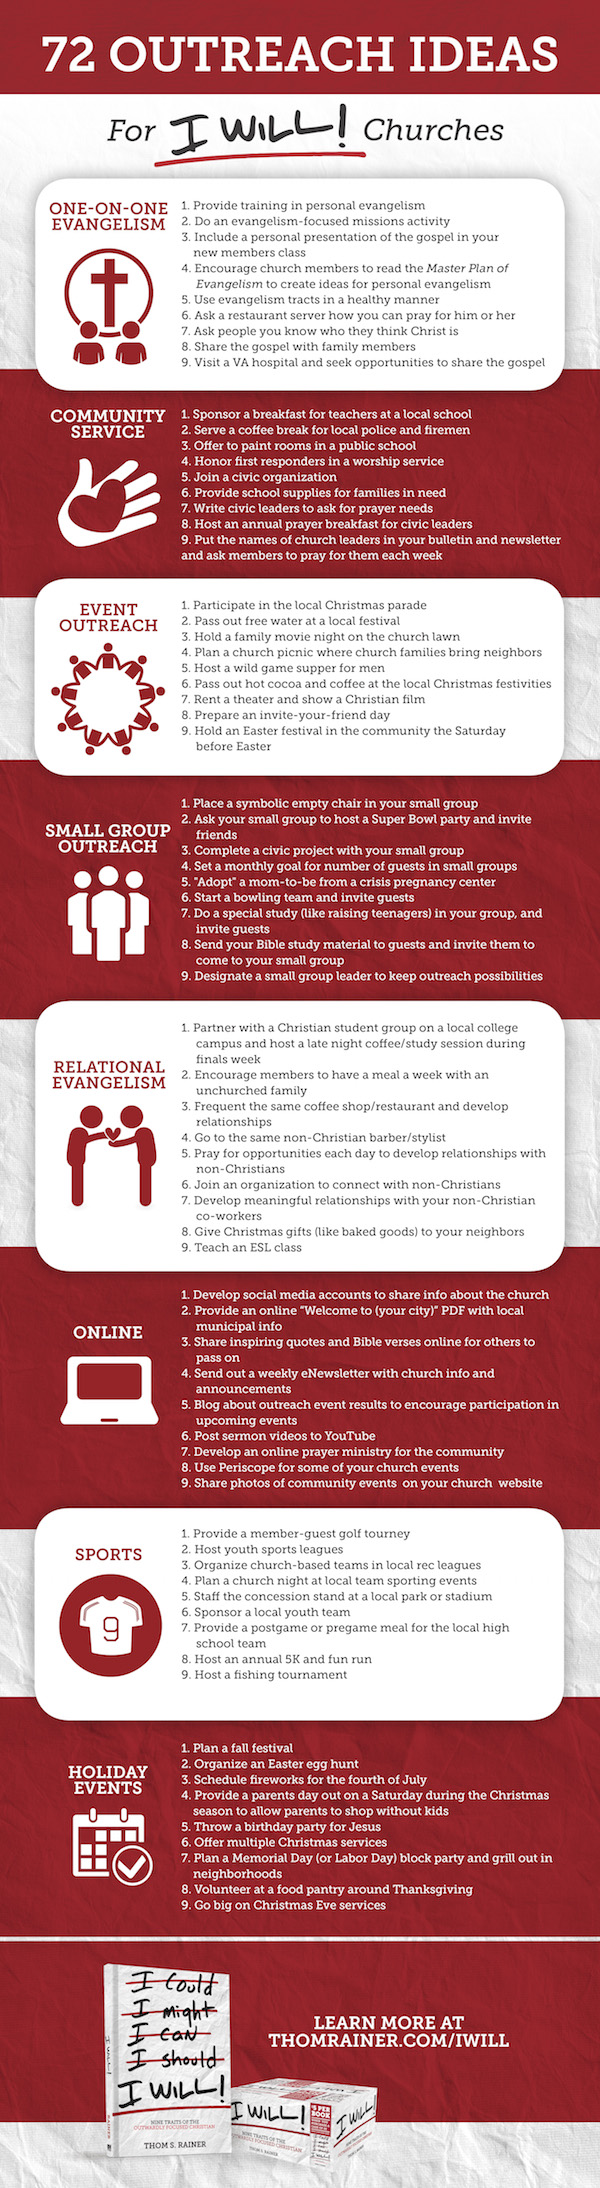 i-will-outreach-infographic-web